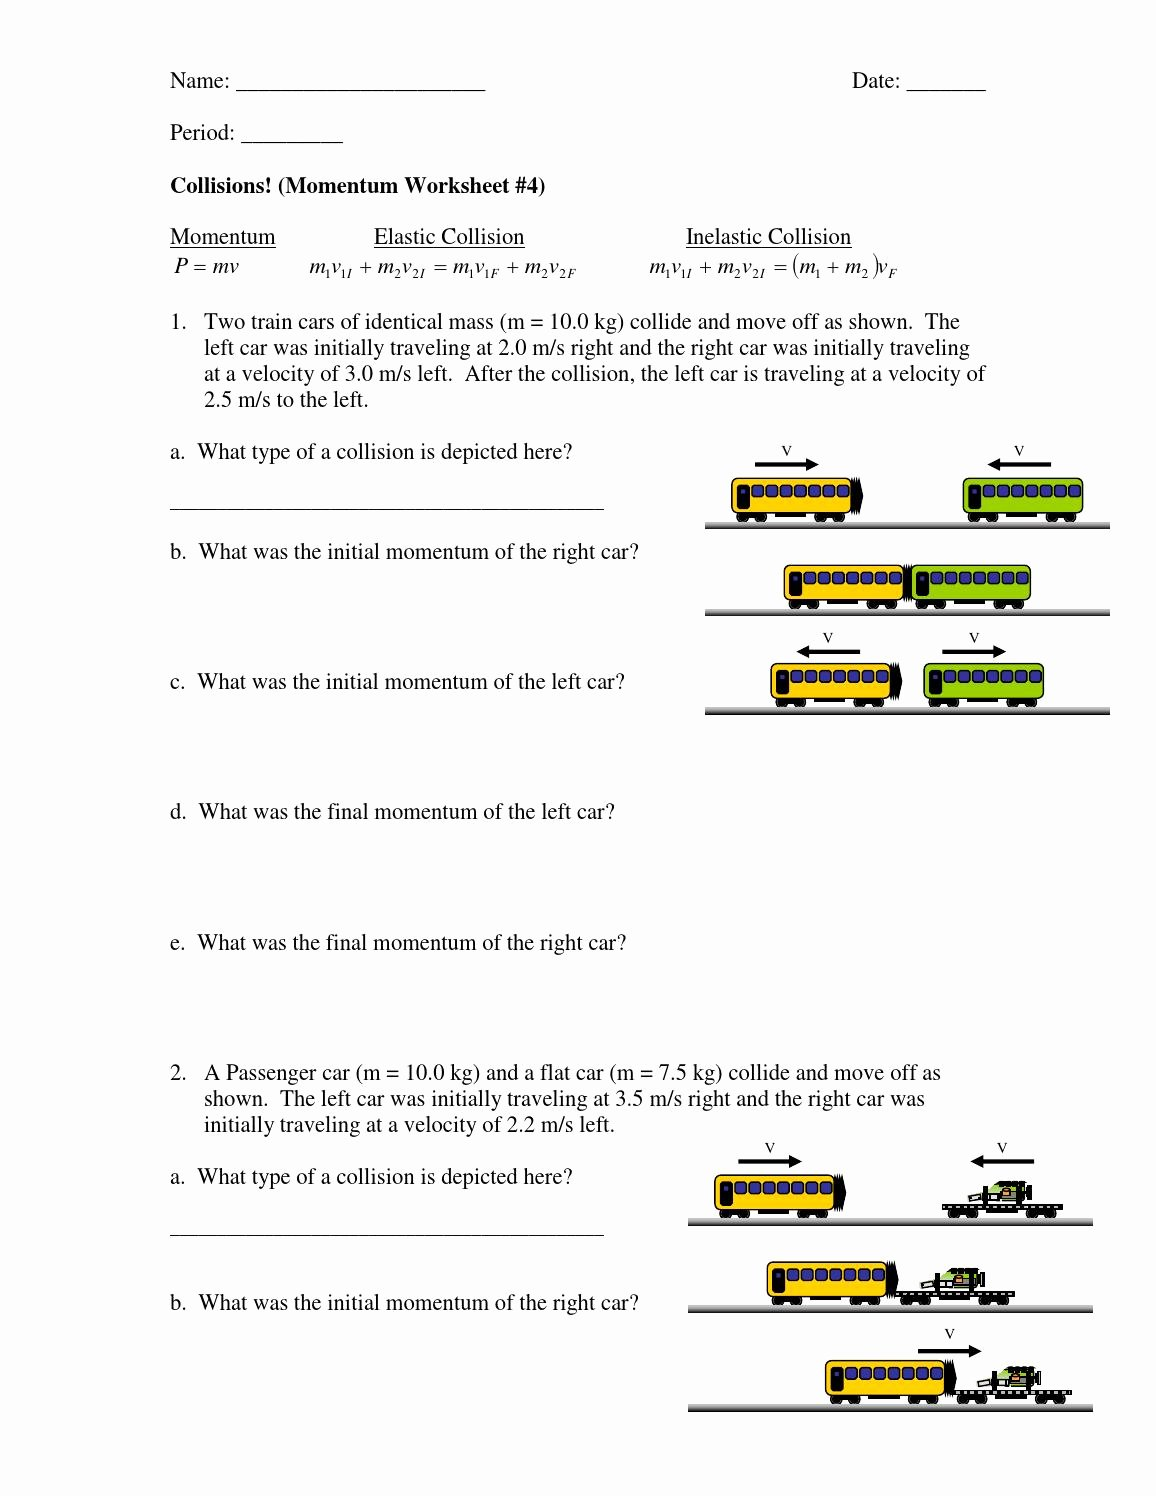 50 Momentum Worksheet Answer Key